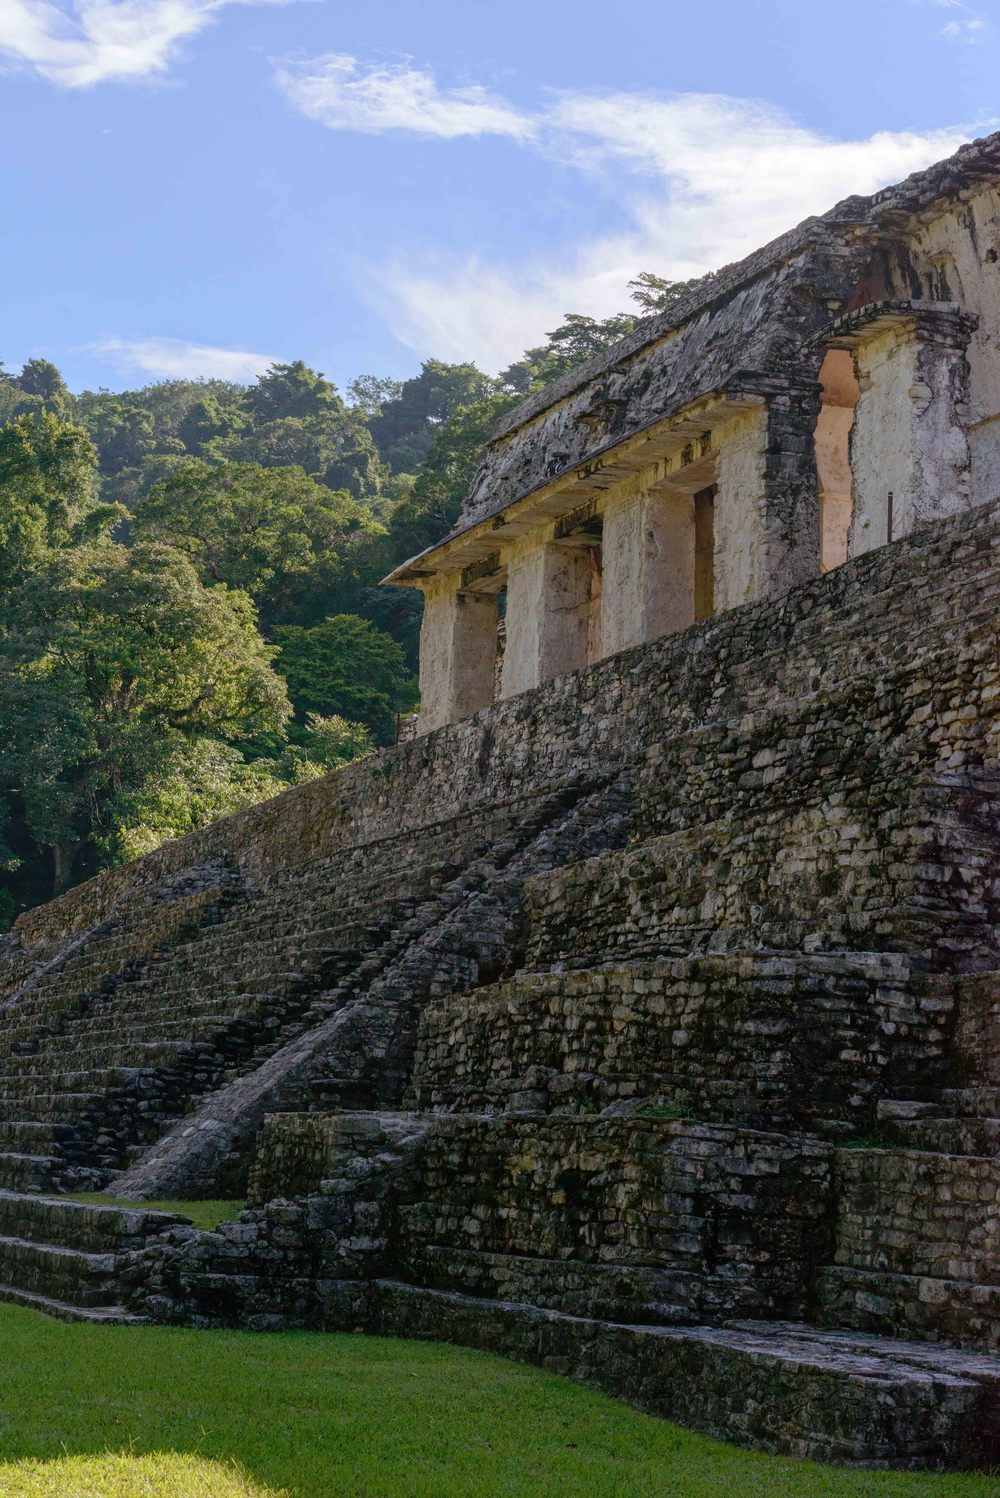 The Palace   , a complex of several connected and adjacent buildings and courtyards, was built by several generations on a wide artificial terrace during four century period. The Palace was used by the Mayan aristocracy for bureaucratic functions, entertainment, and ritualistic ceremonies. The Palace is located in the center of the ancient city.